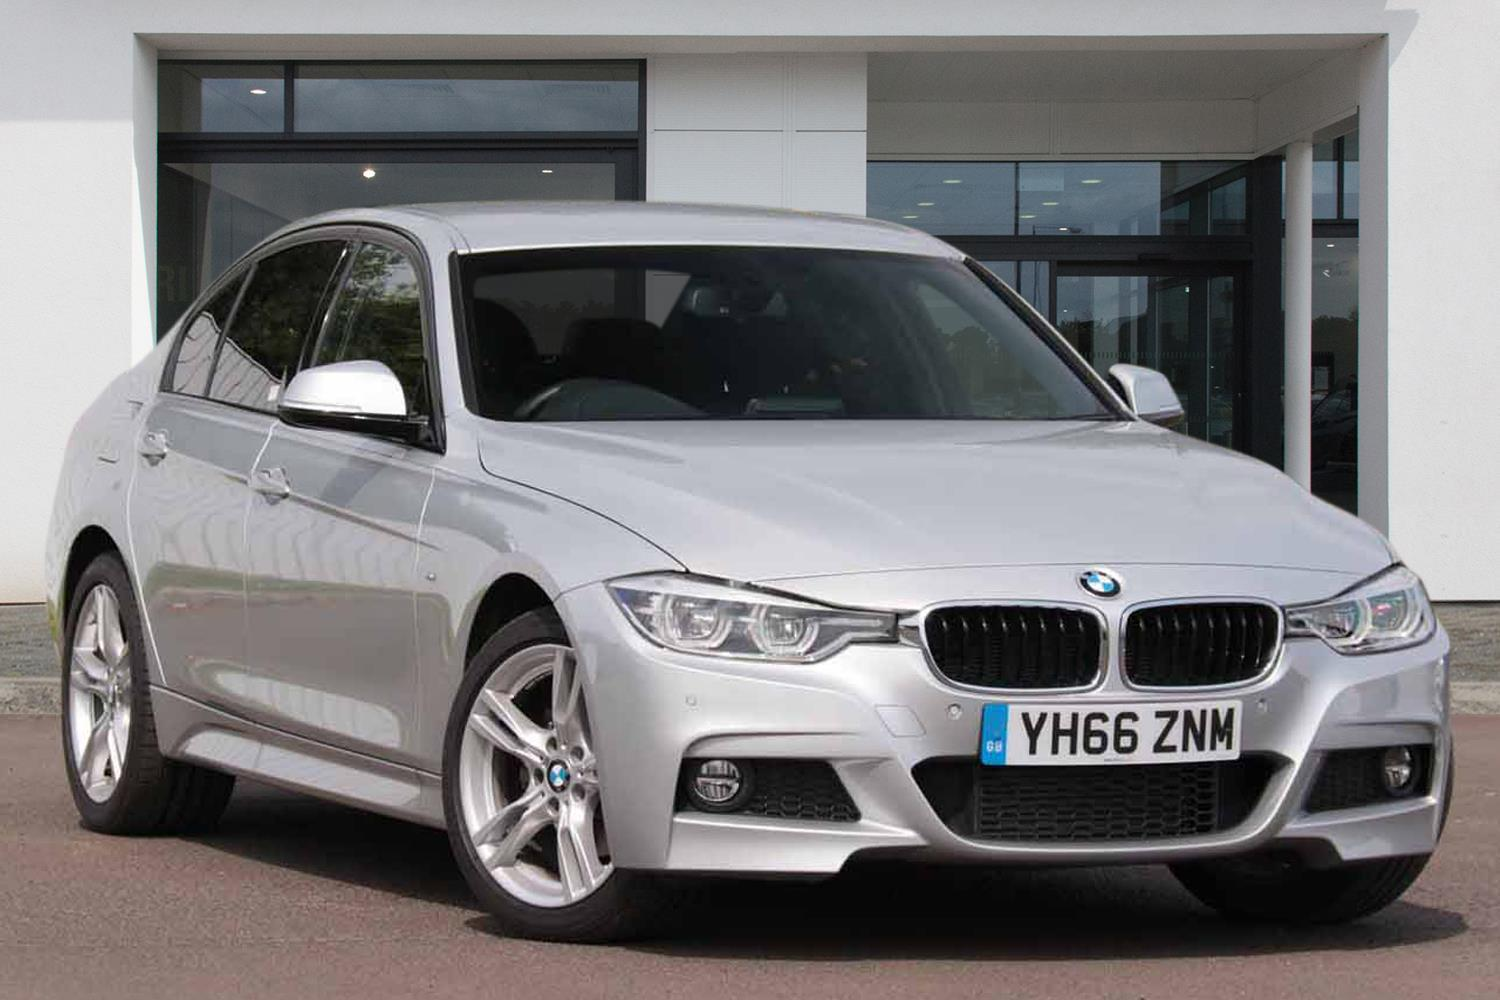 BMW 3 Series Saloon YH66ZNM - Image 1